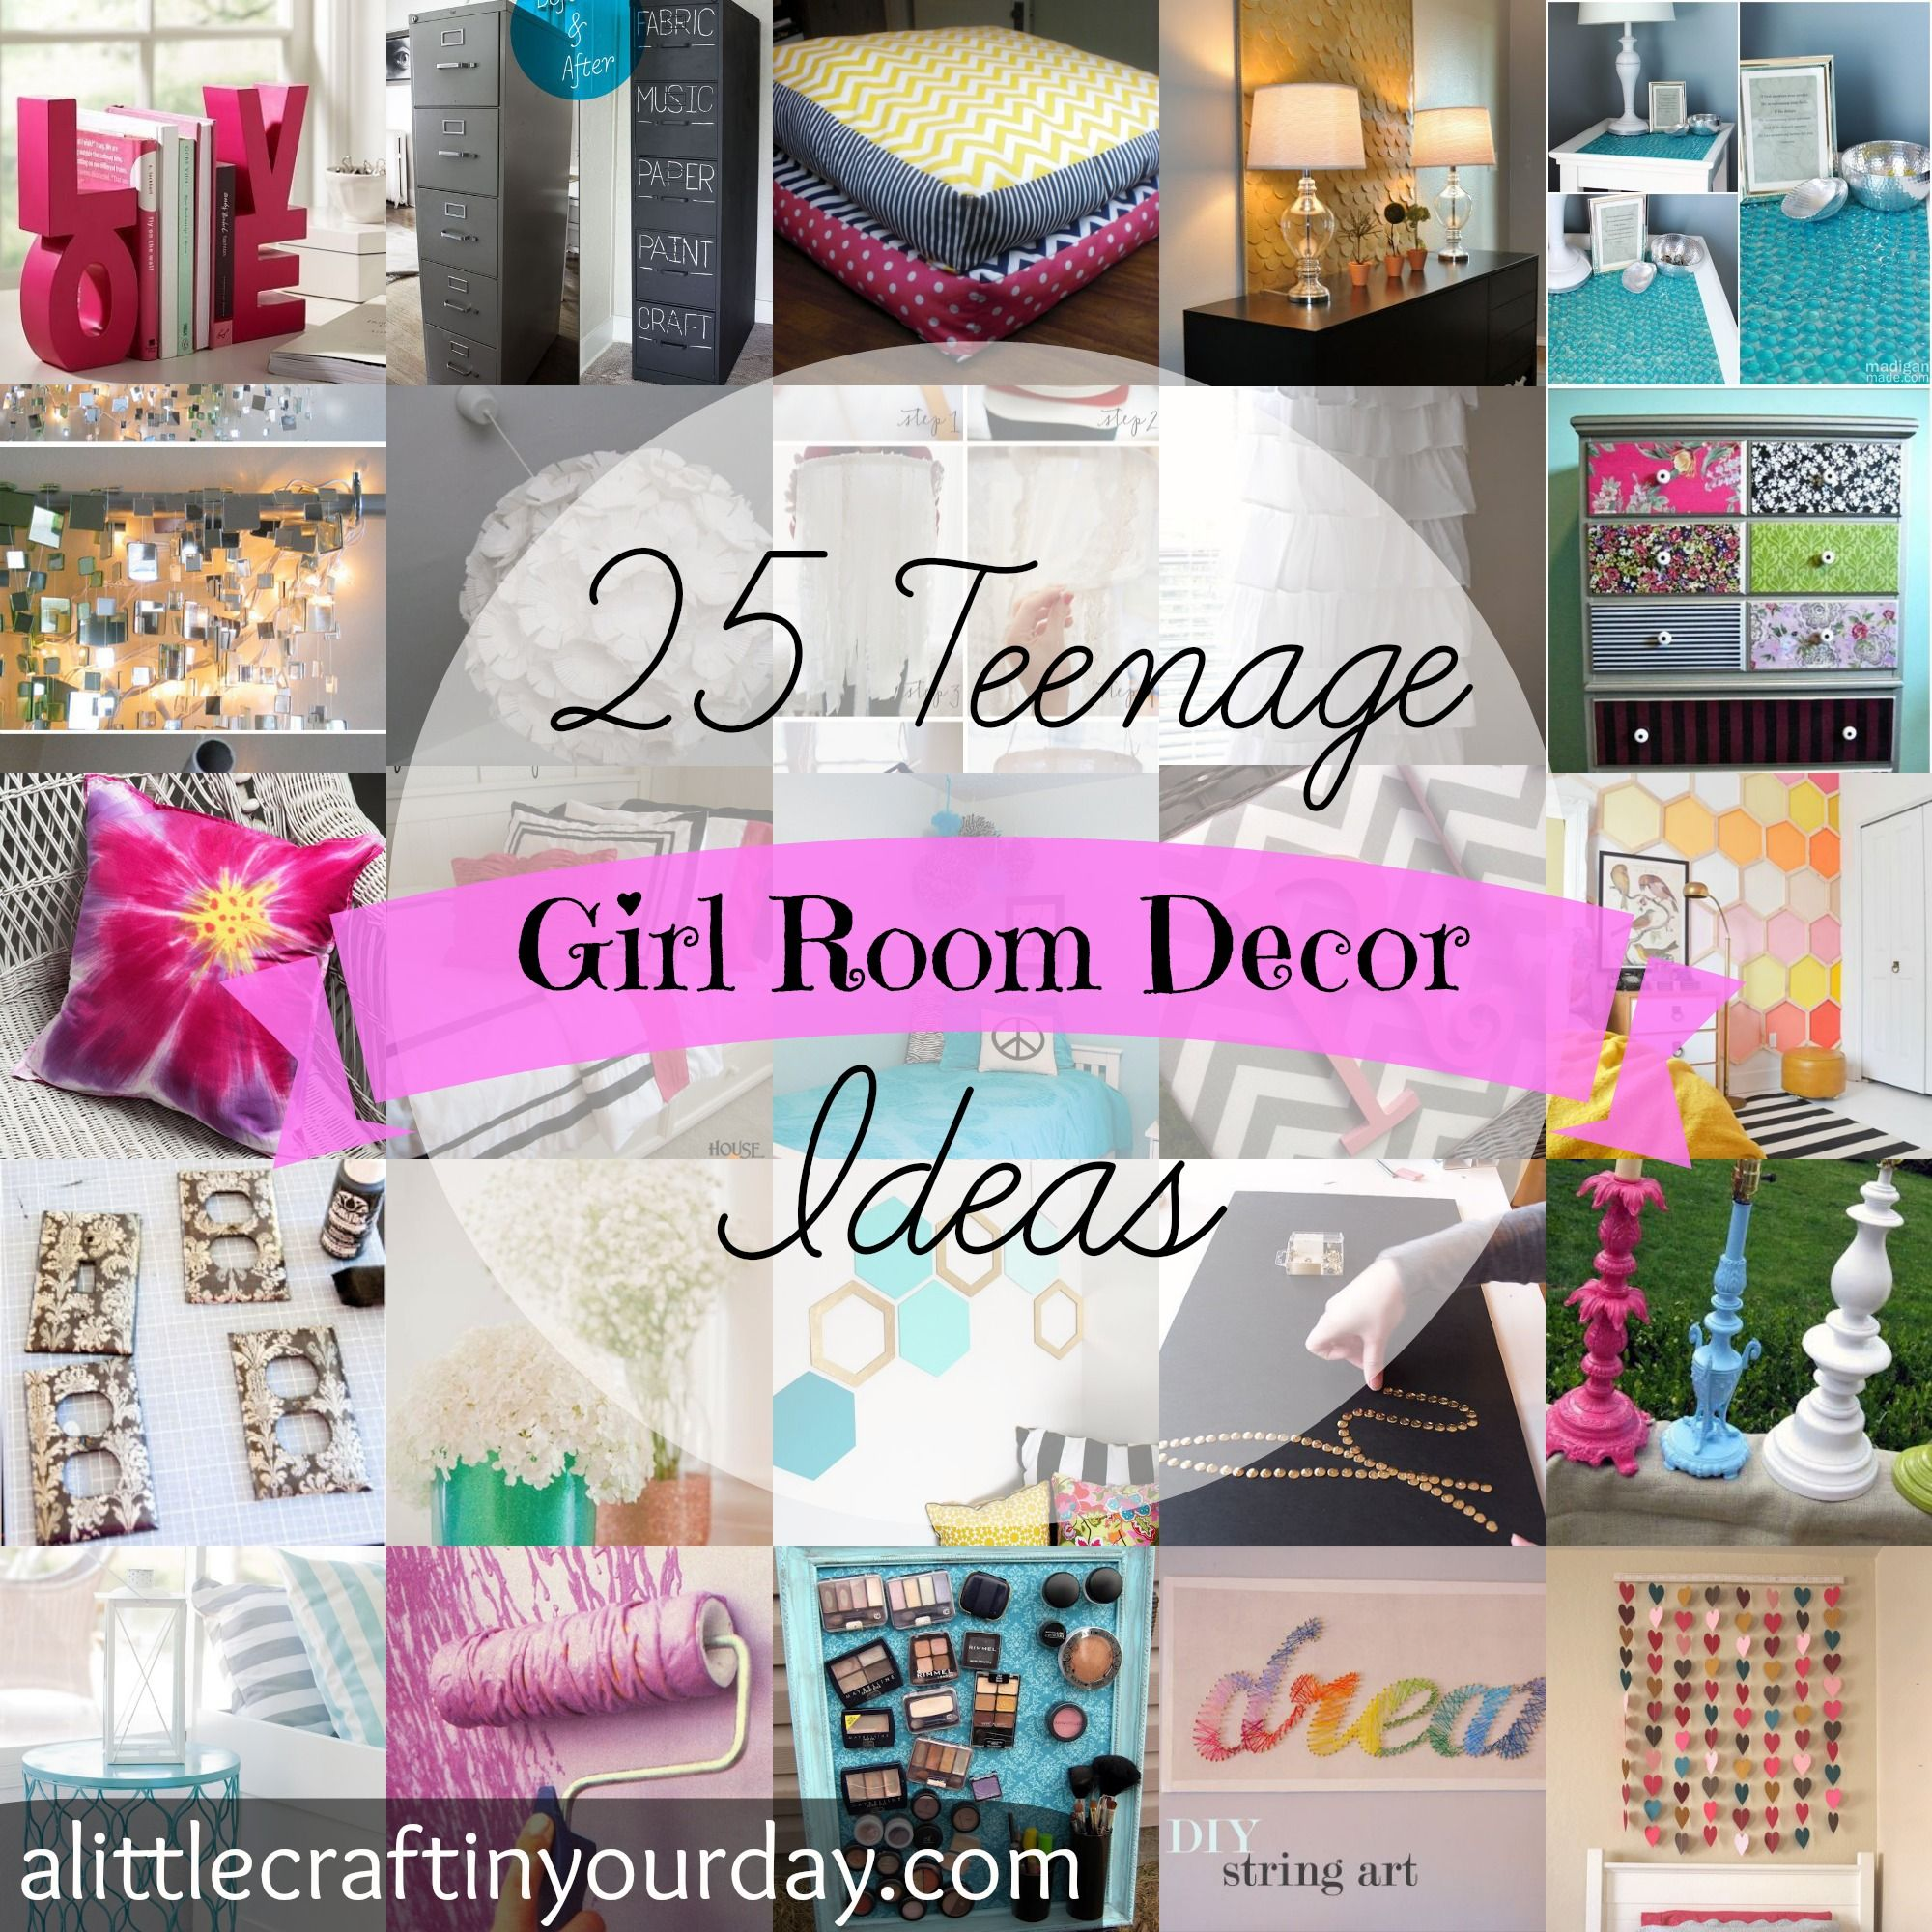 Diy room decor tutorials for teens - 14 Diy Halloween Costumes Teenage Girl Roomsteen